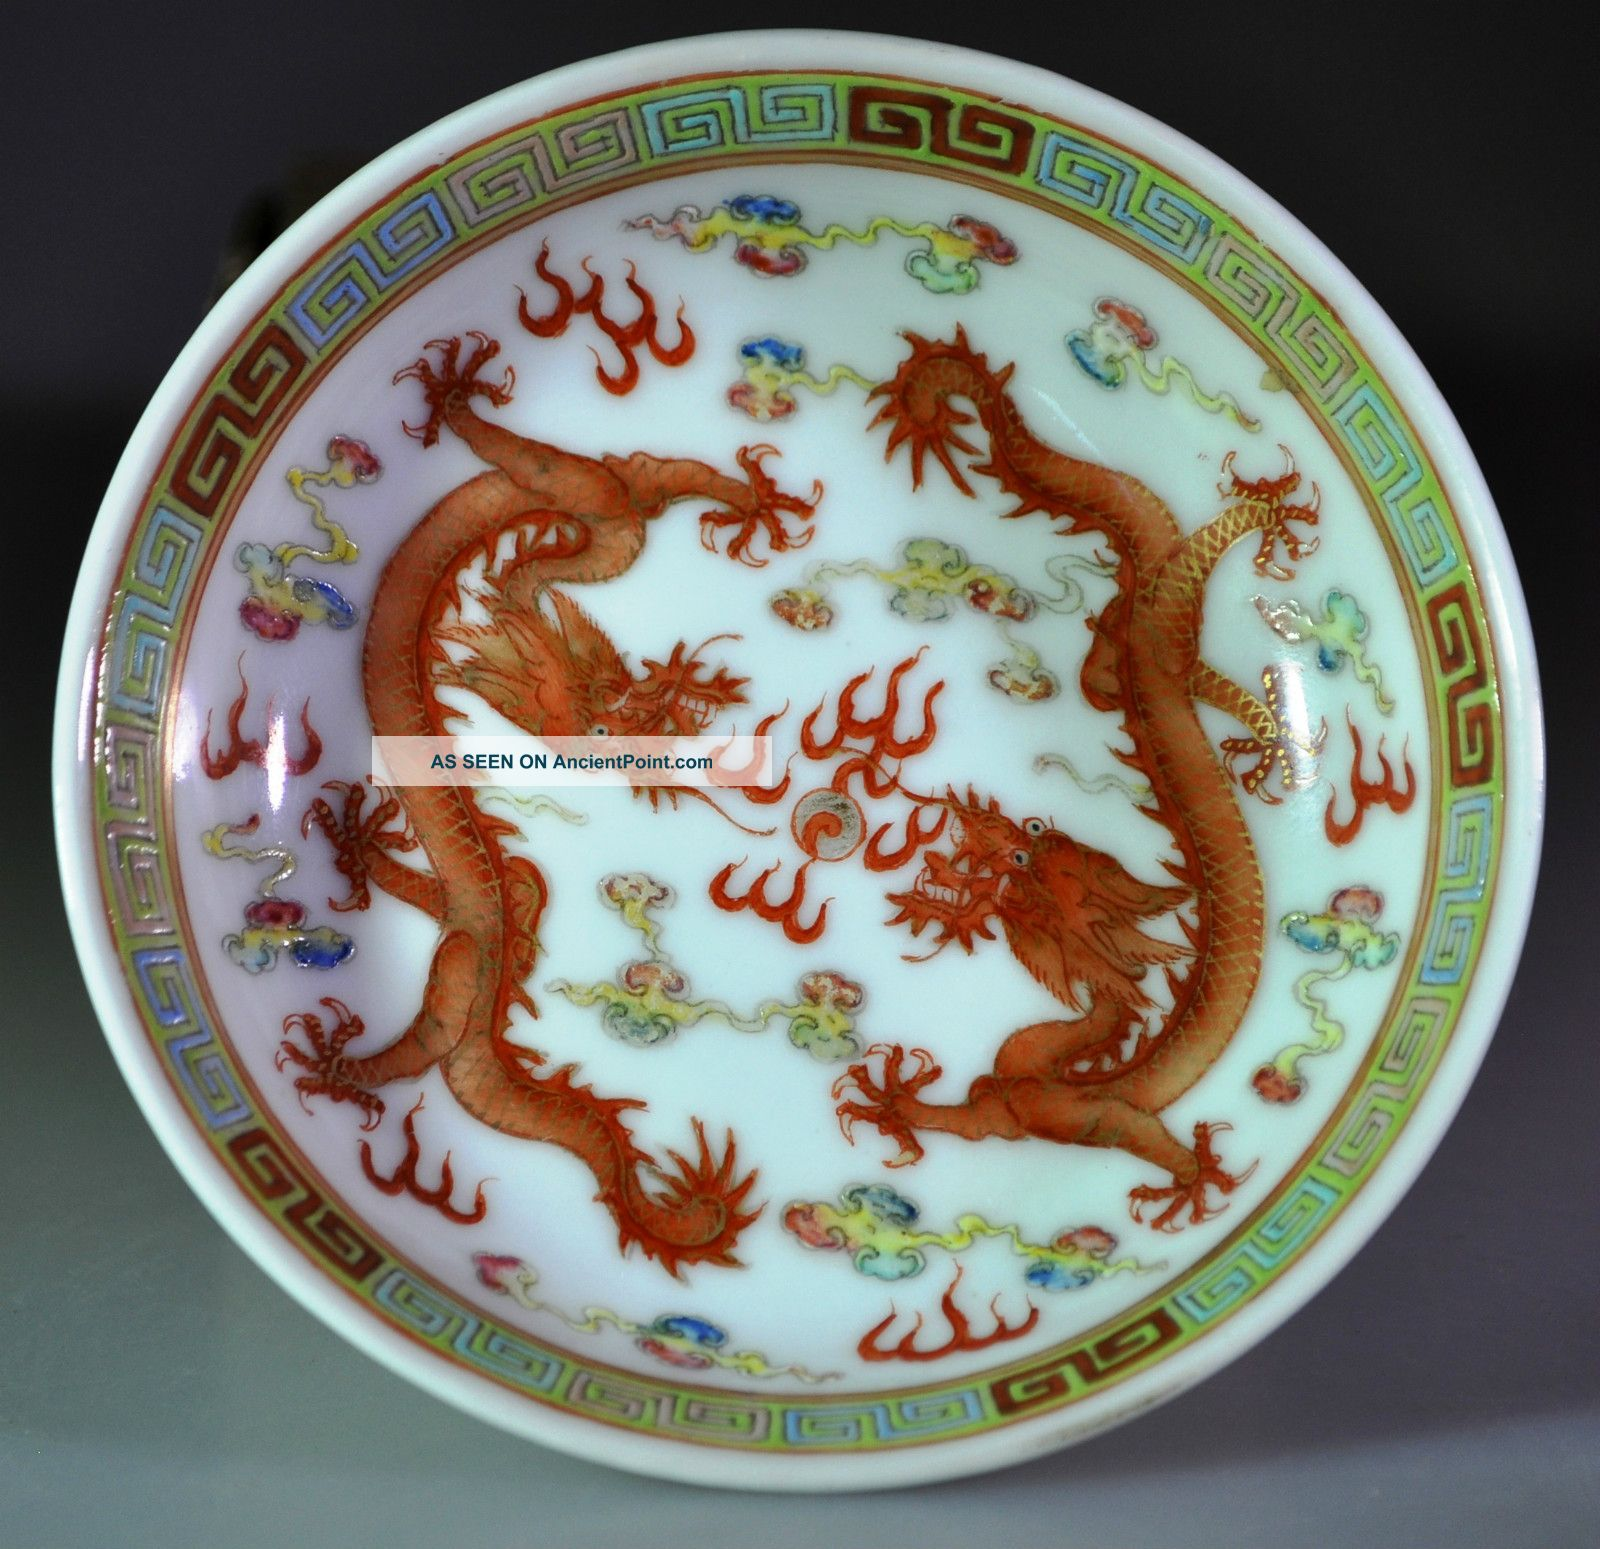 & 19th Century Antique Chinese Porcelain Plate Double Dragon Guangxu Mark